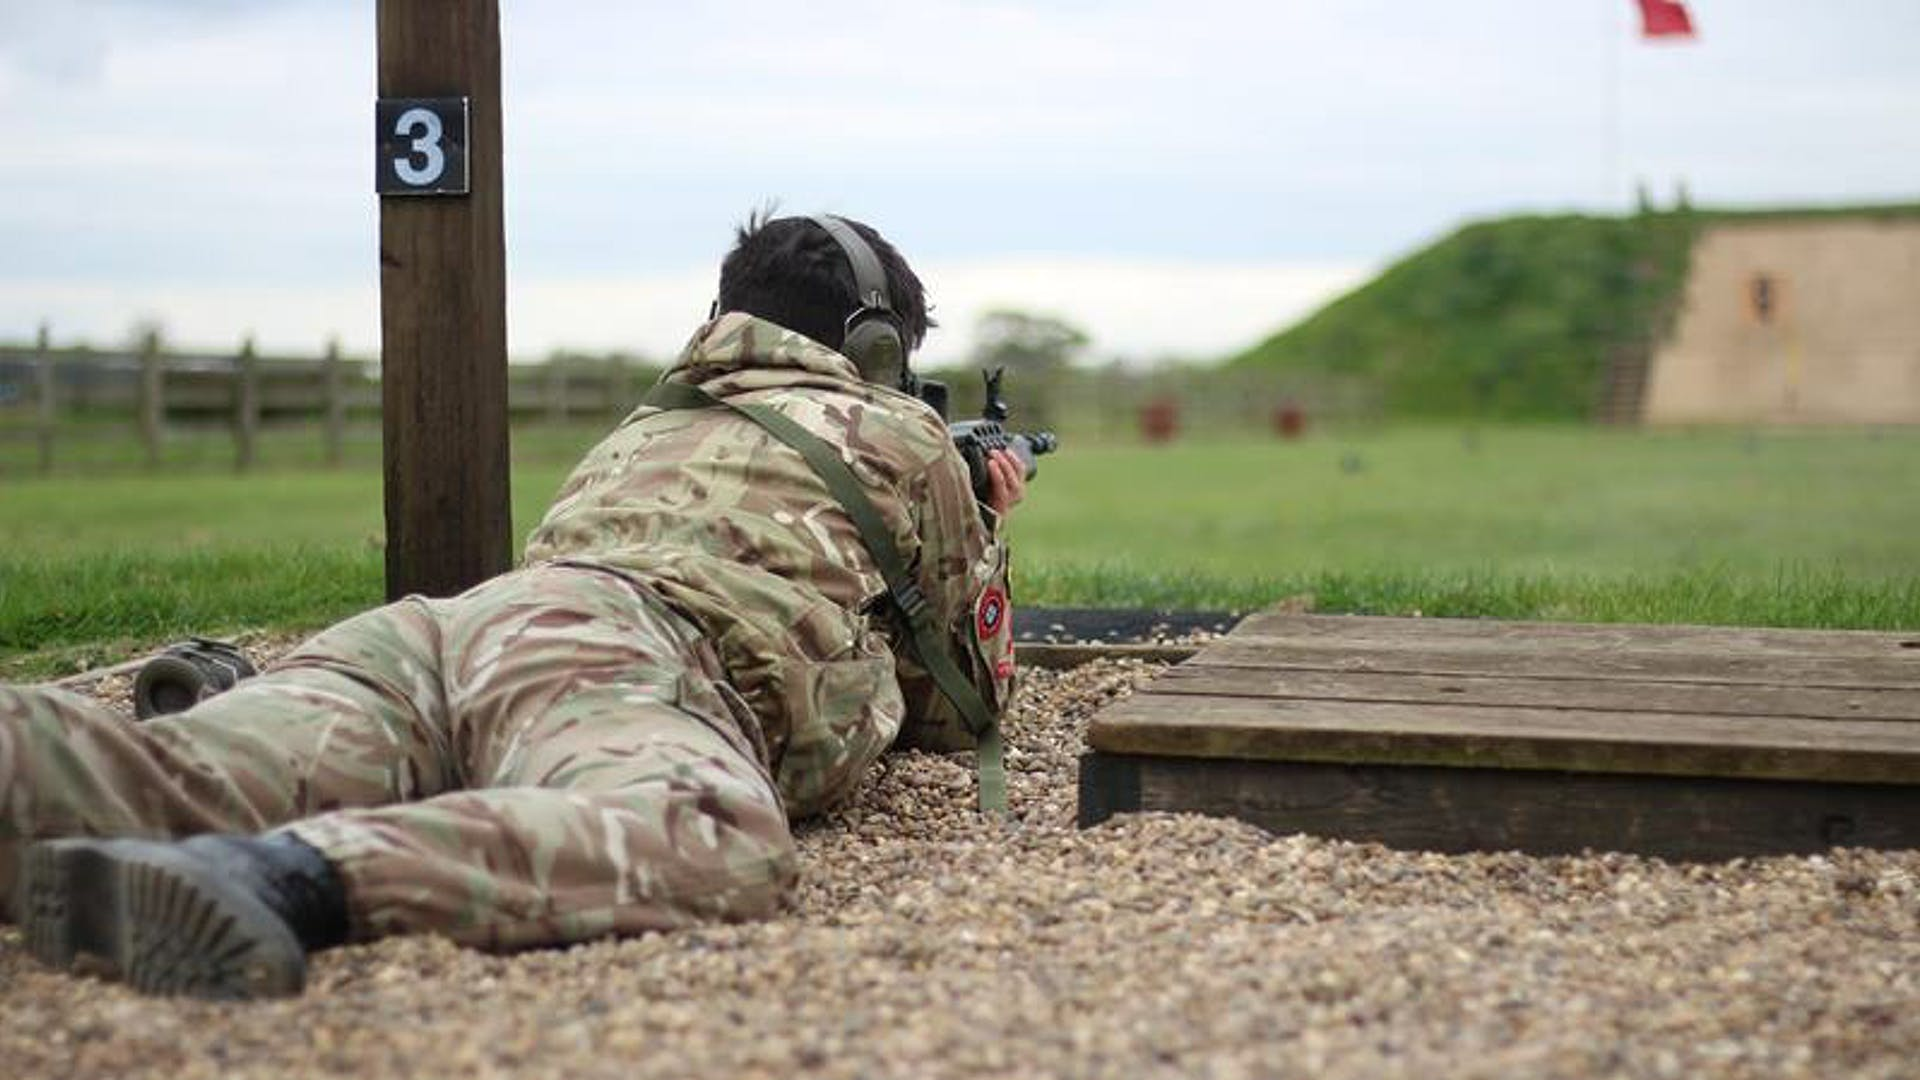 Priory Academy LSST L Cpl Owen Frances pic Cpl Callum Nicol in the prone position on a 100m GP Rifle Range at RAF Beckingham 1